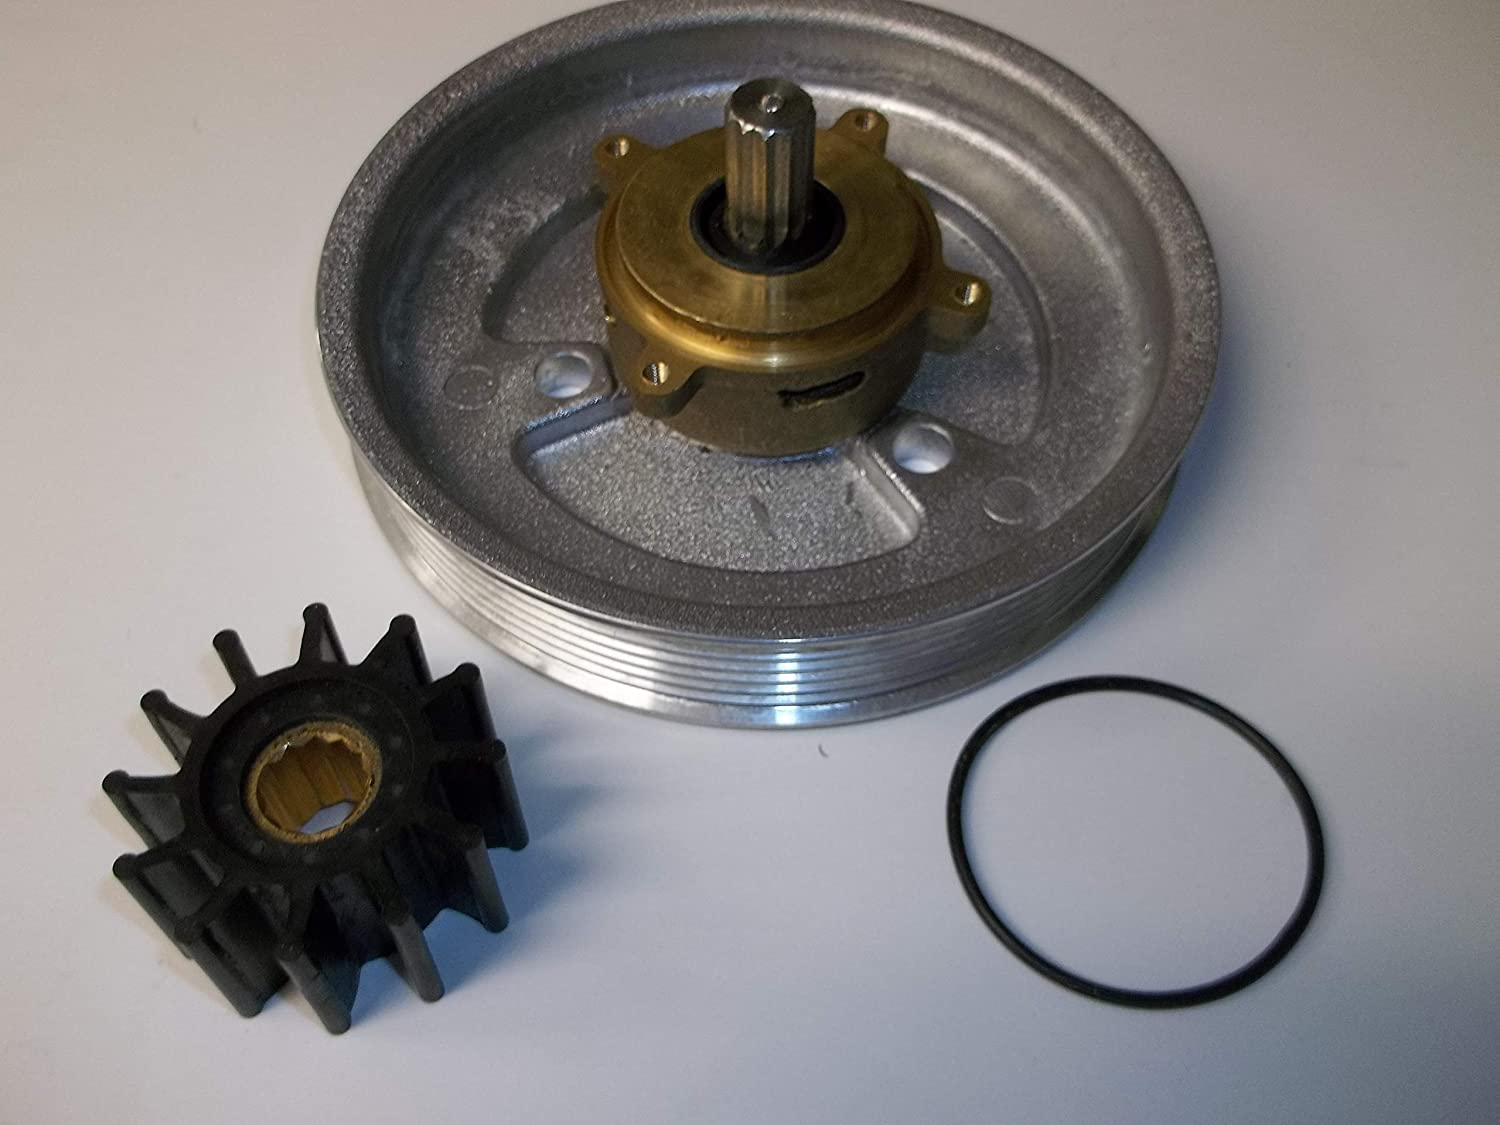 New crank mounted impeller raw sea water pump for Volvo Penta 4.3 GL 5.0 5.7,